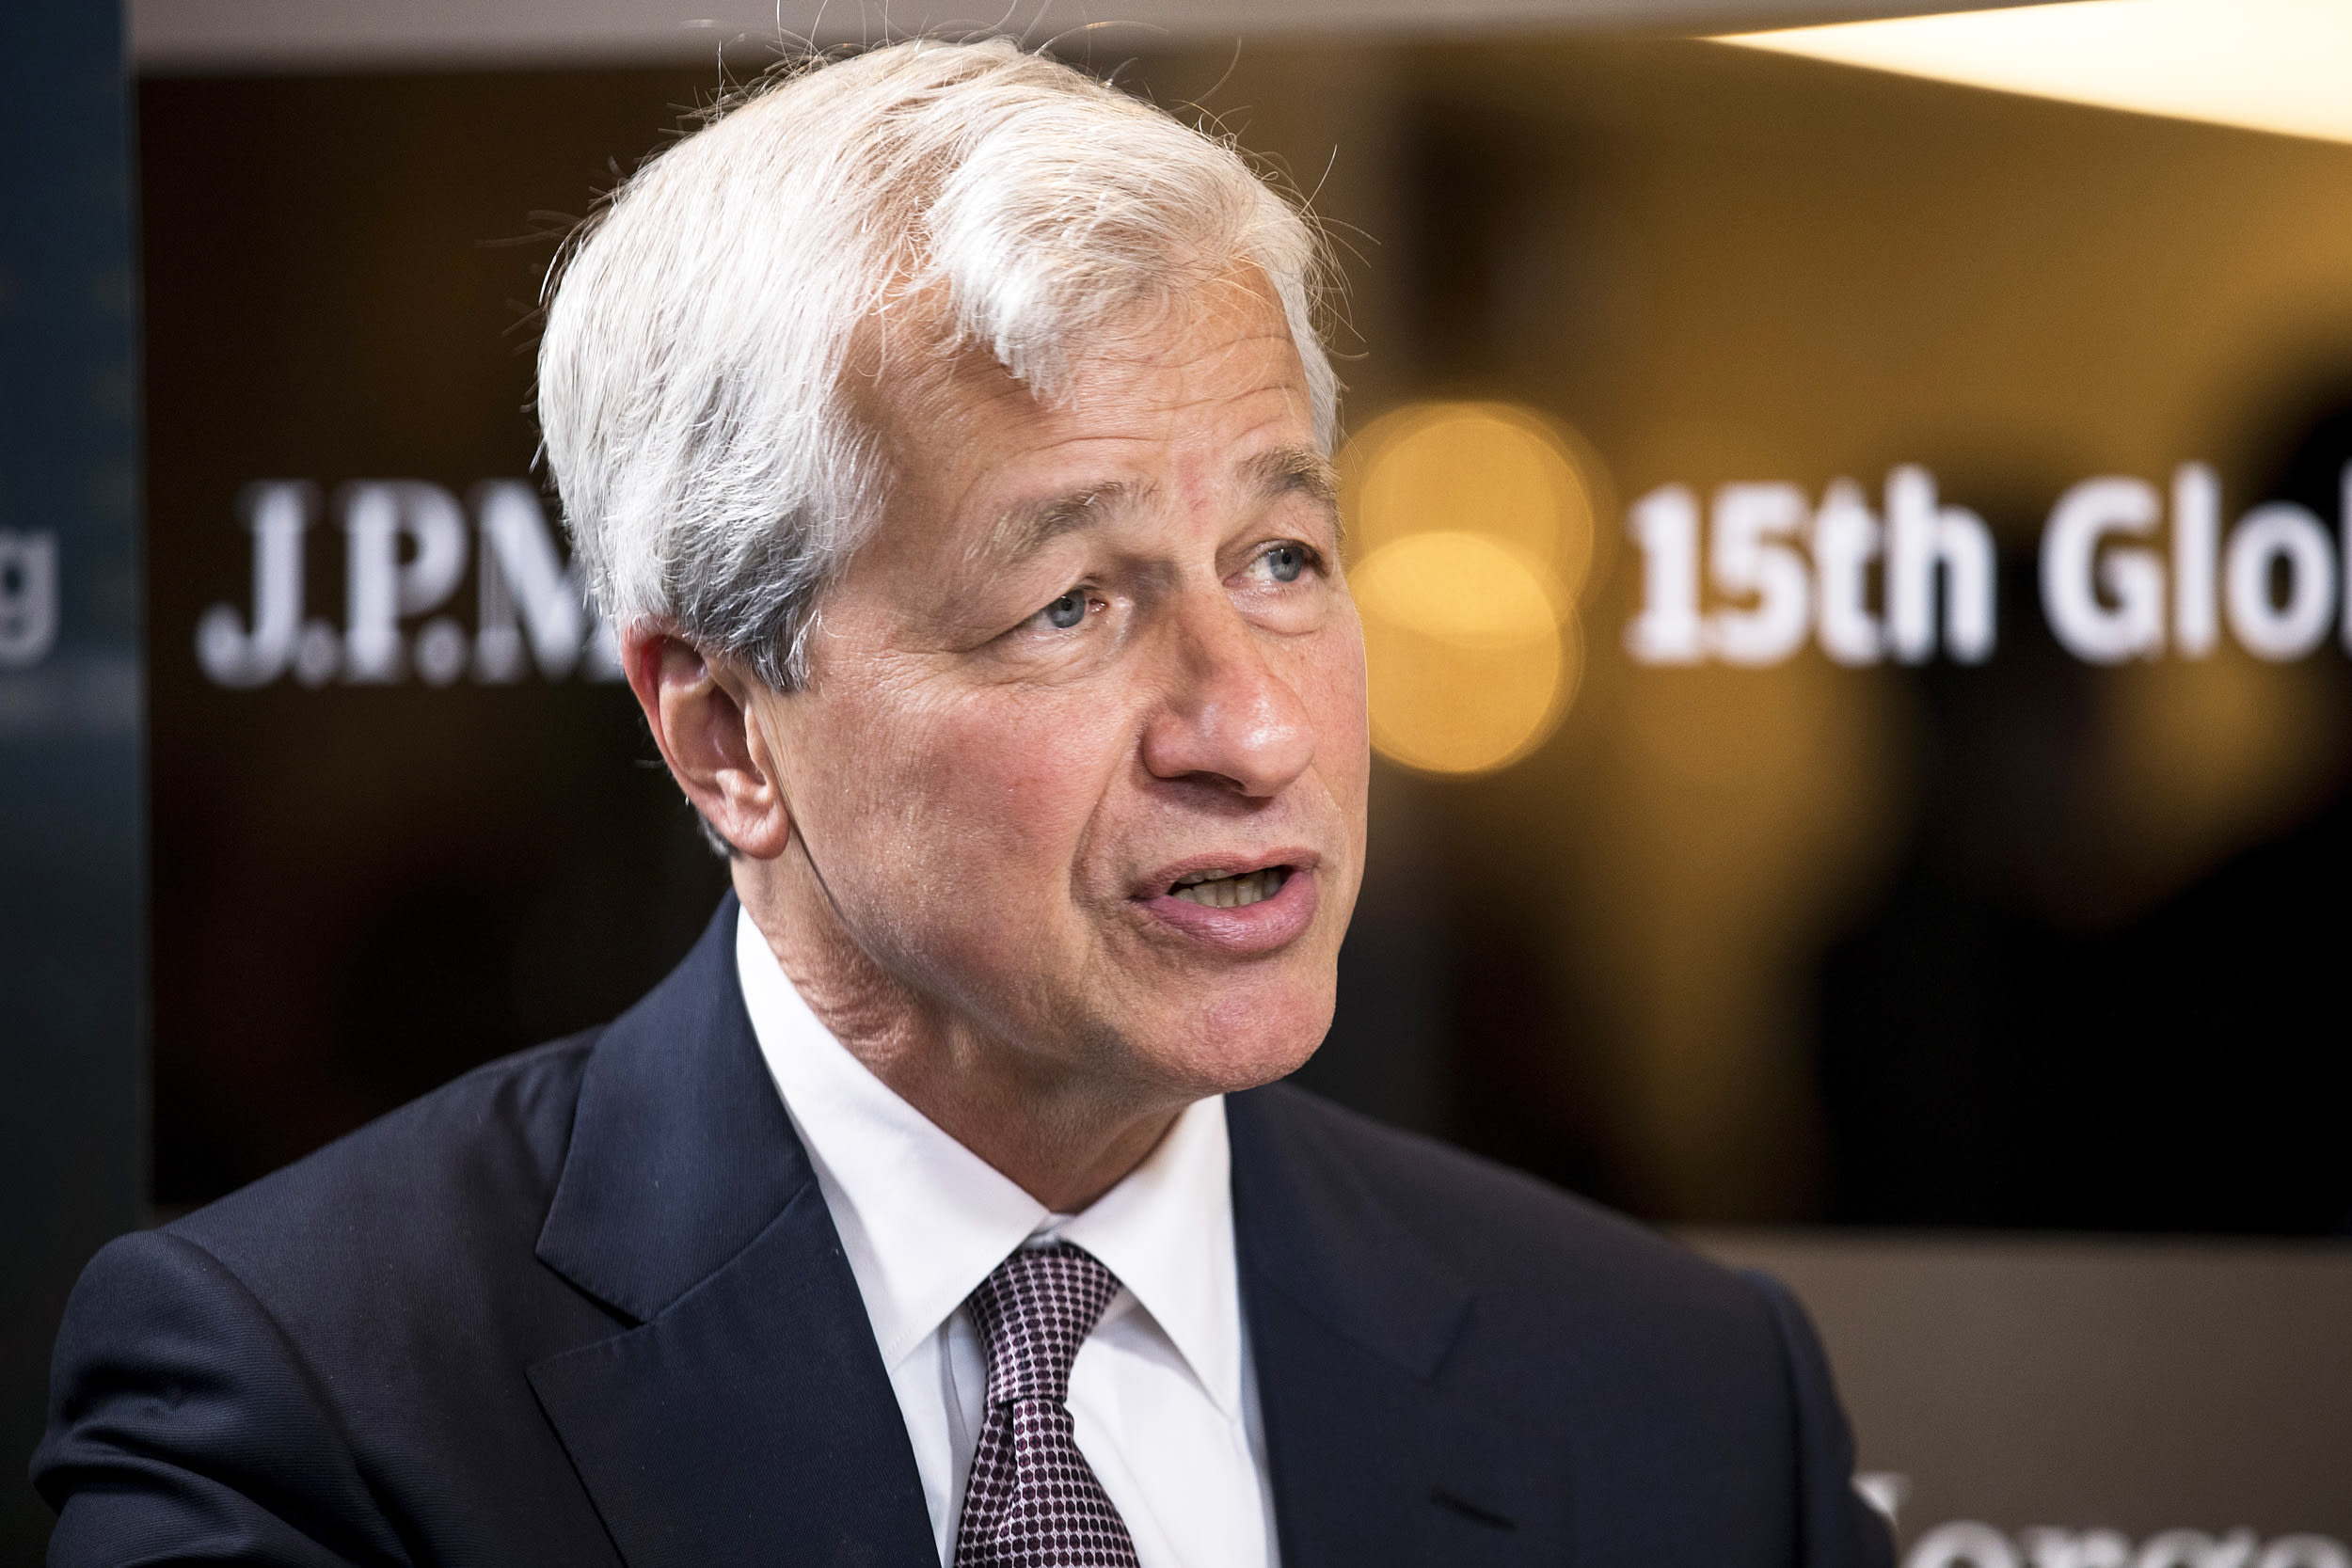 Jamie Dimon says JP Morgan preparing for 0% interest rates in U.S.